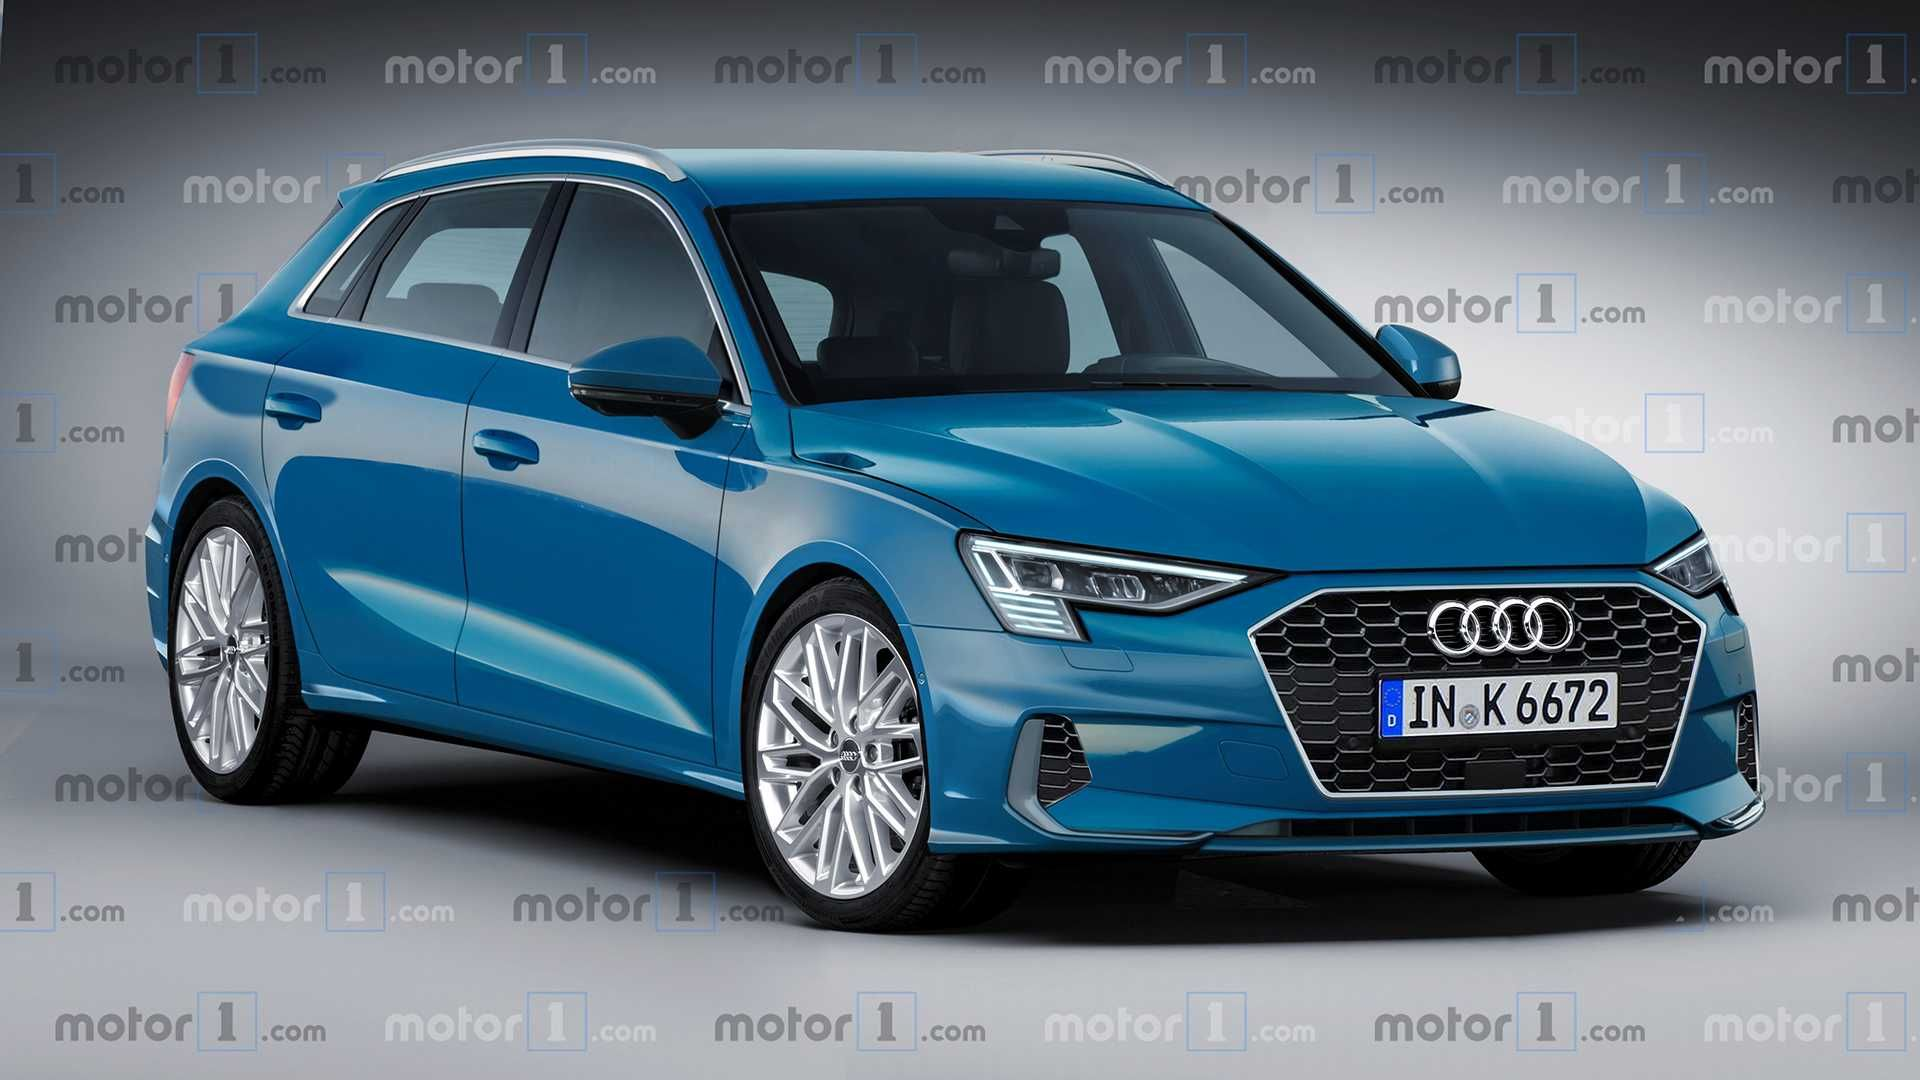 Review New Audi A3 Sportback 2020 Release Date And Images Feels Free To Follow Us Di 2020